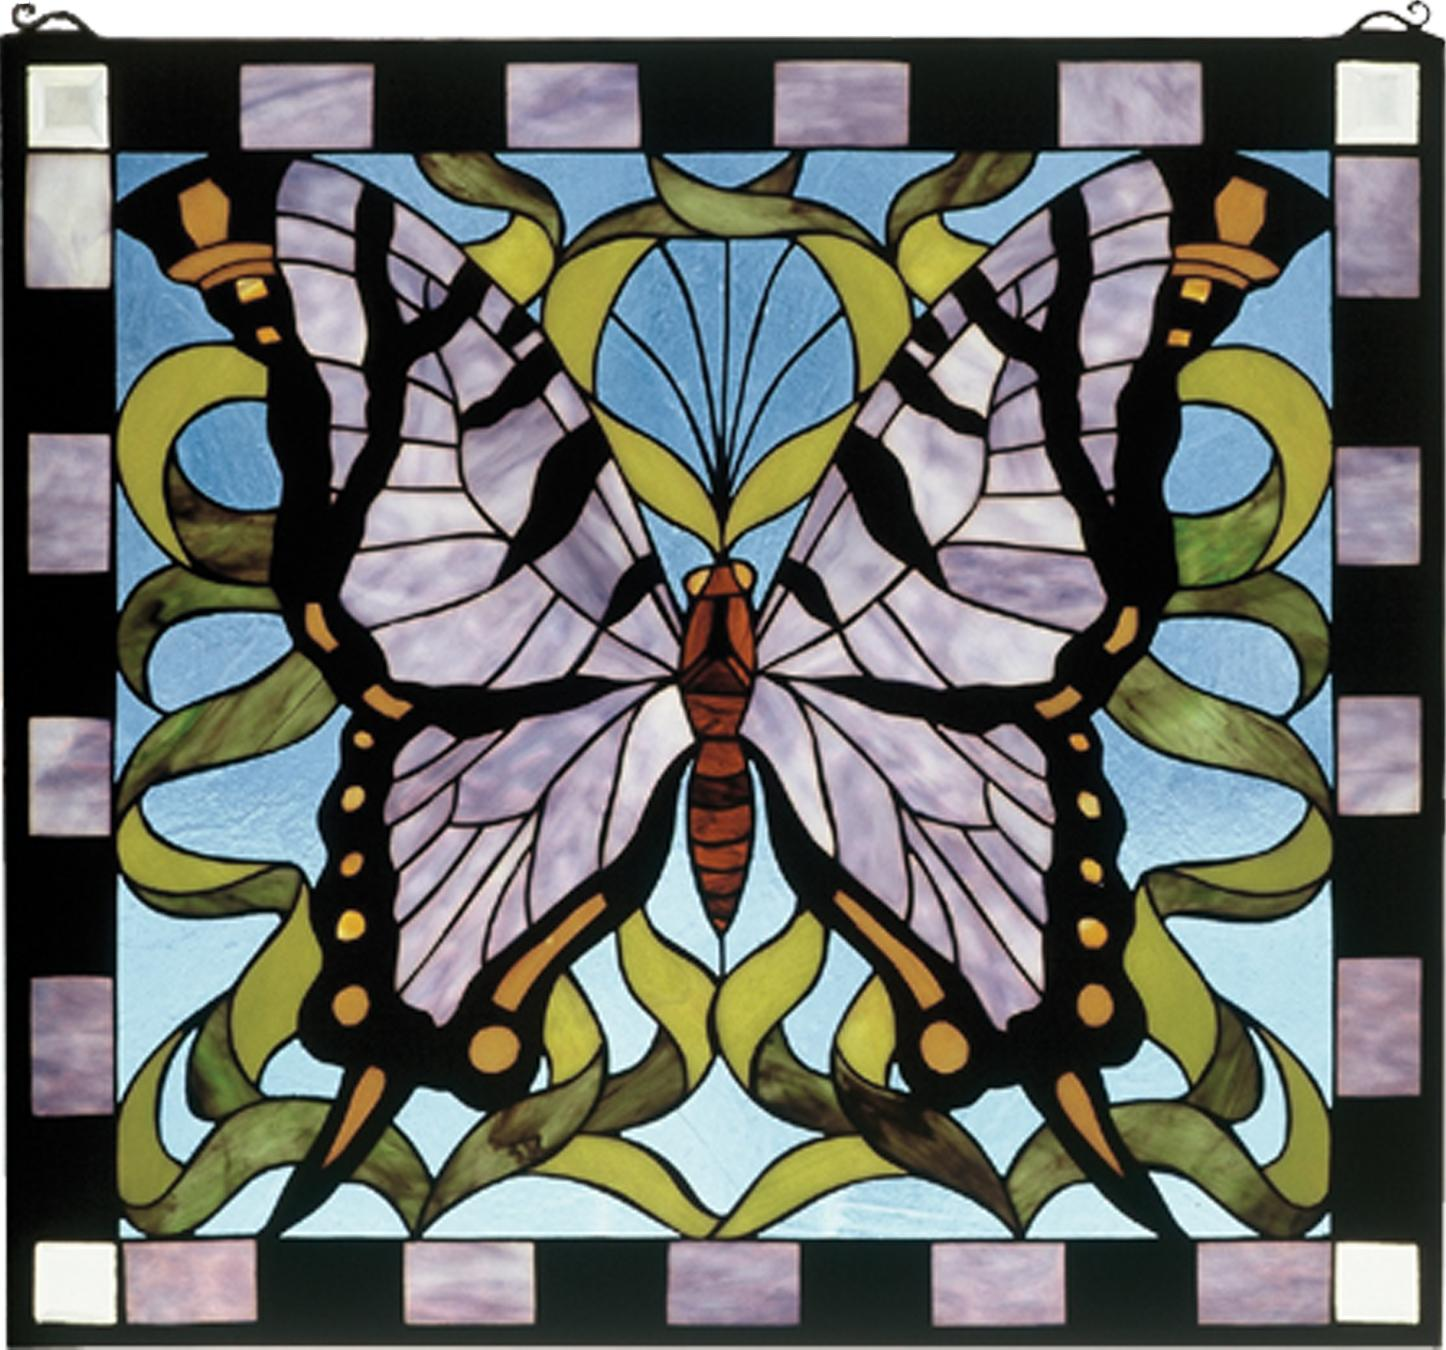 Supreme Butterfly Stained Glass Window Butterfly Stained Glass Window Meyda Tiffany Interiordecorating Stained Glass Butterfly Suncatcher Stained Glass Butterfly Pattern Easy houzz-03 Stained Glass Butterfly